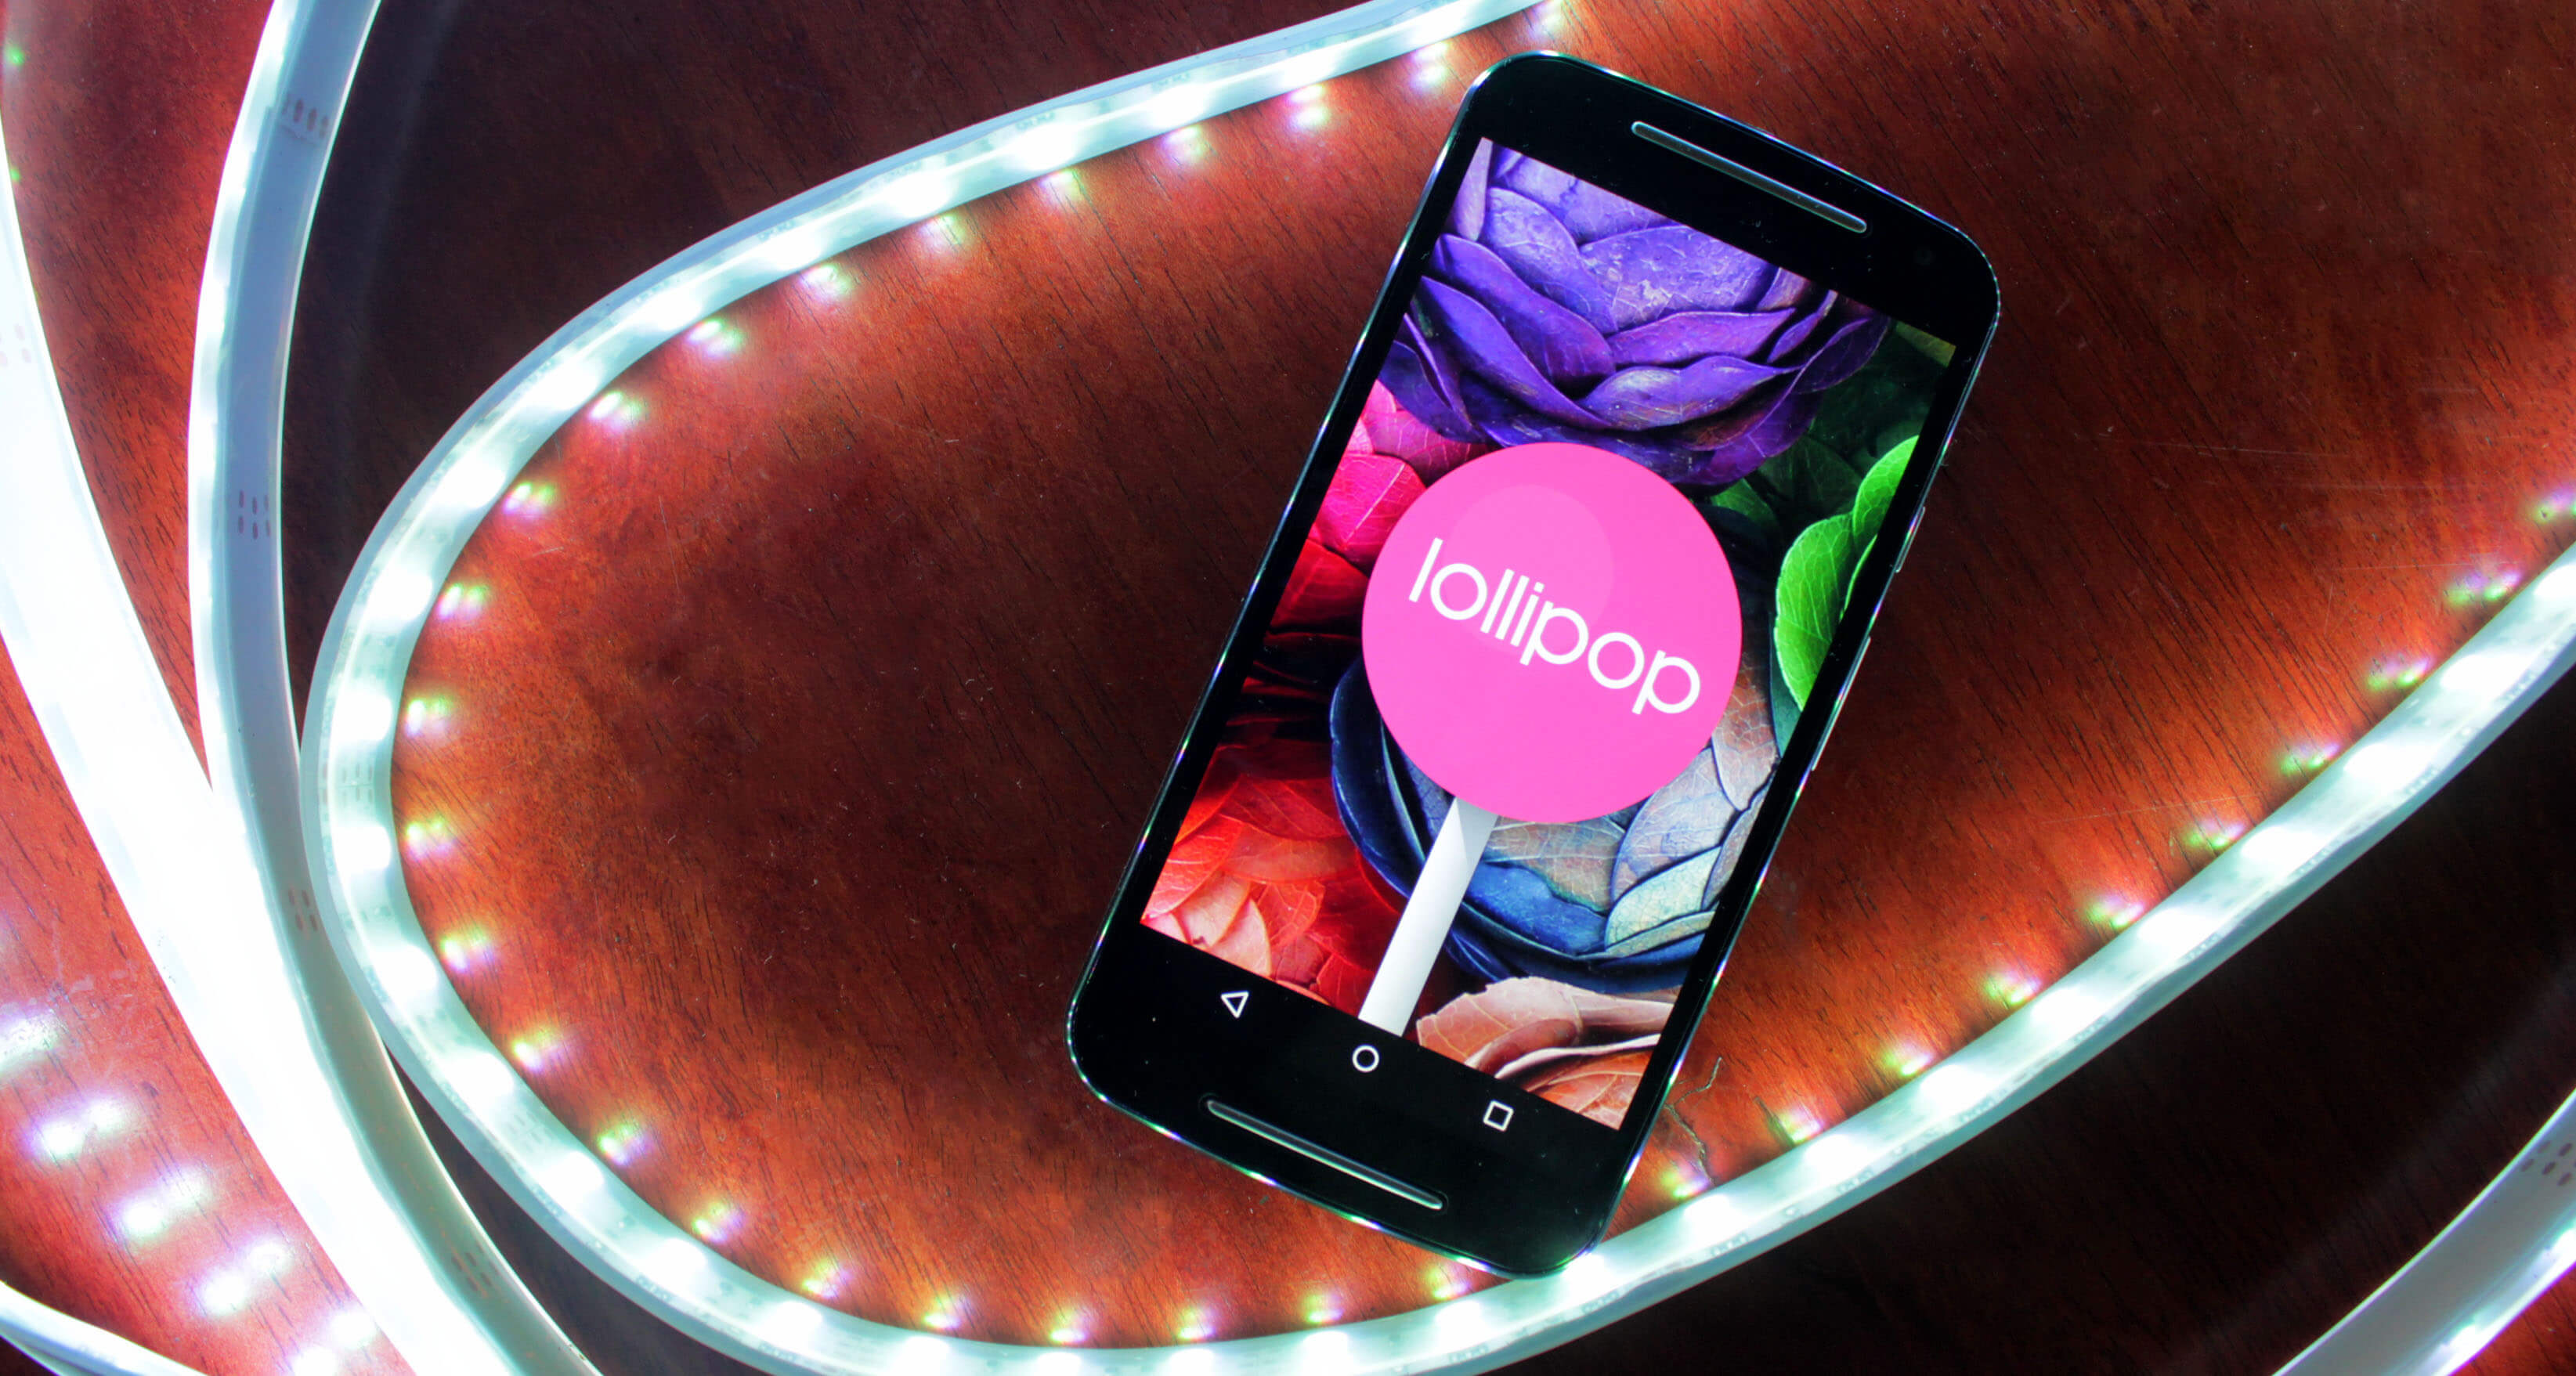 MotoG-Android-Lollipop-Review